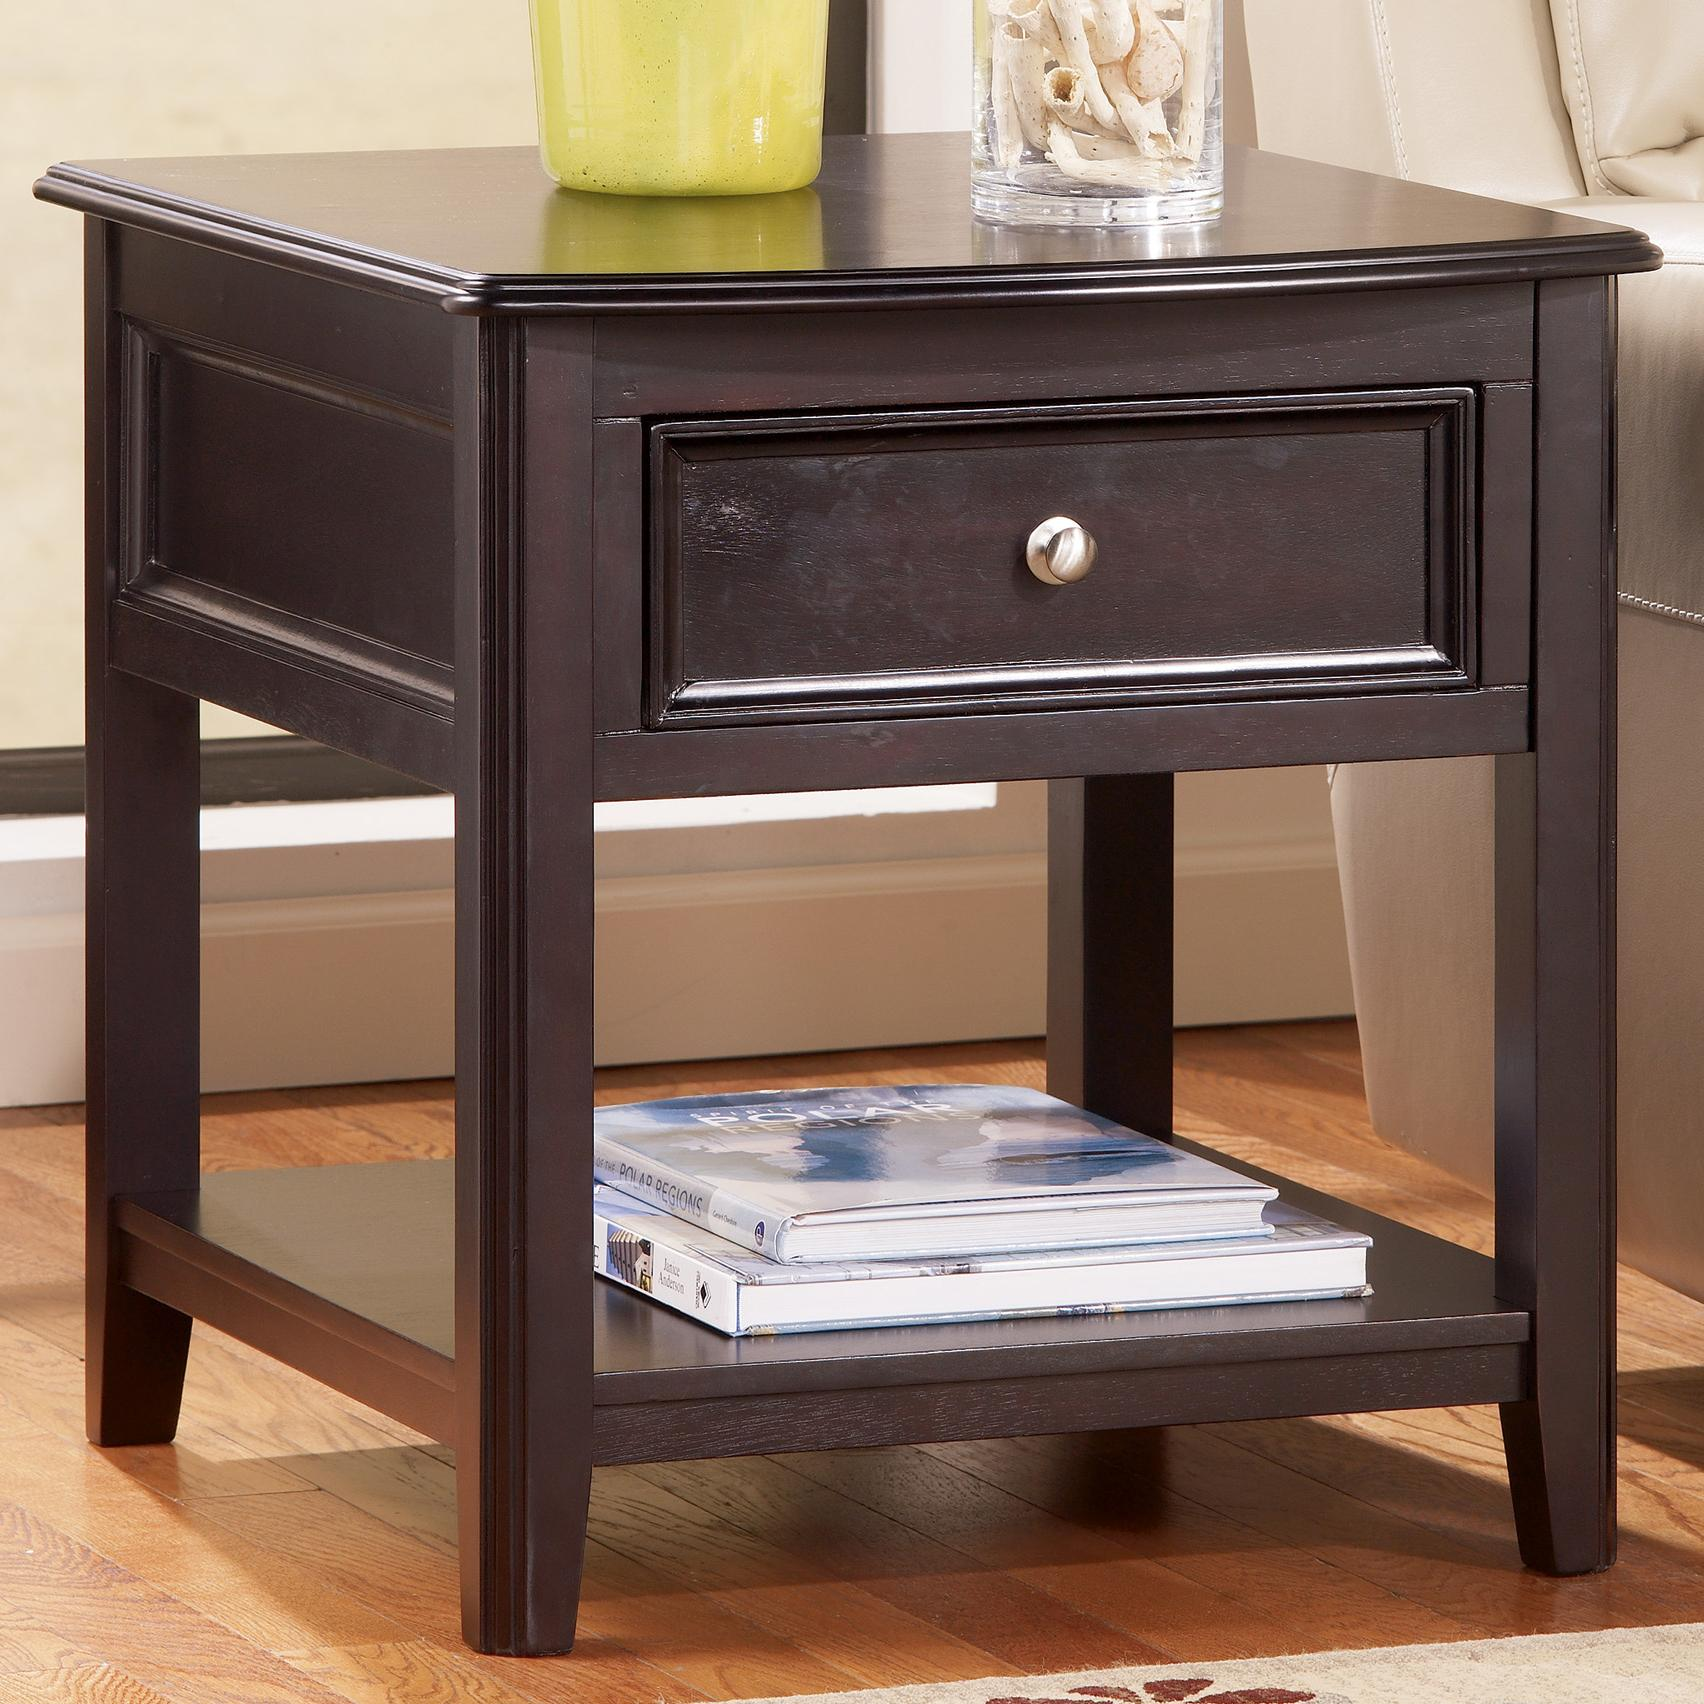 Merveilleux Rectangular End Table With Drawer And Bottom Shelf